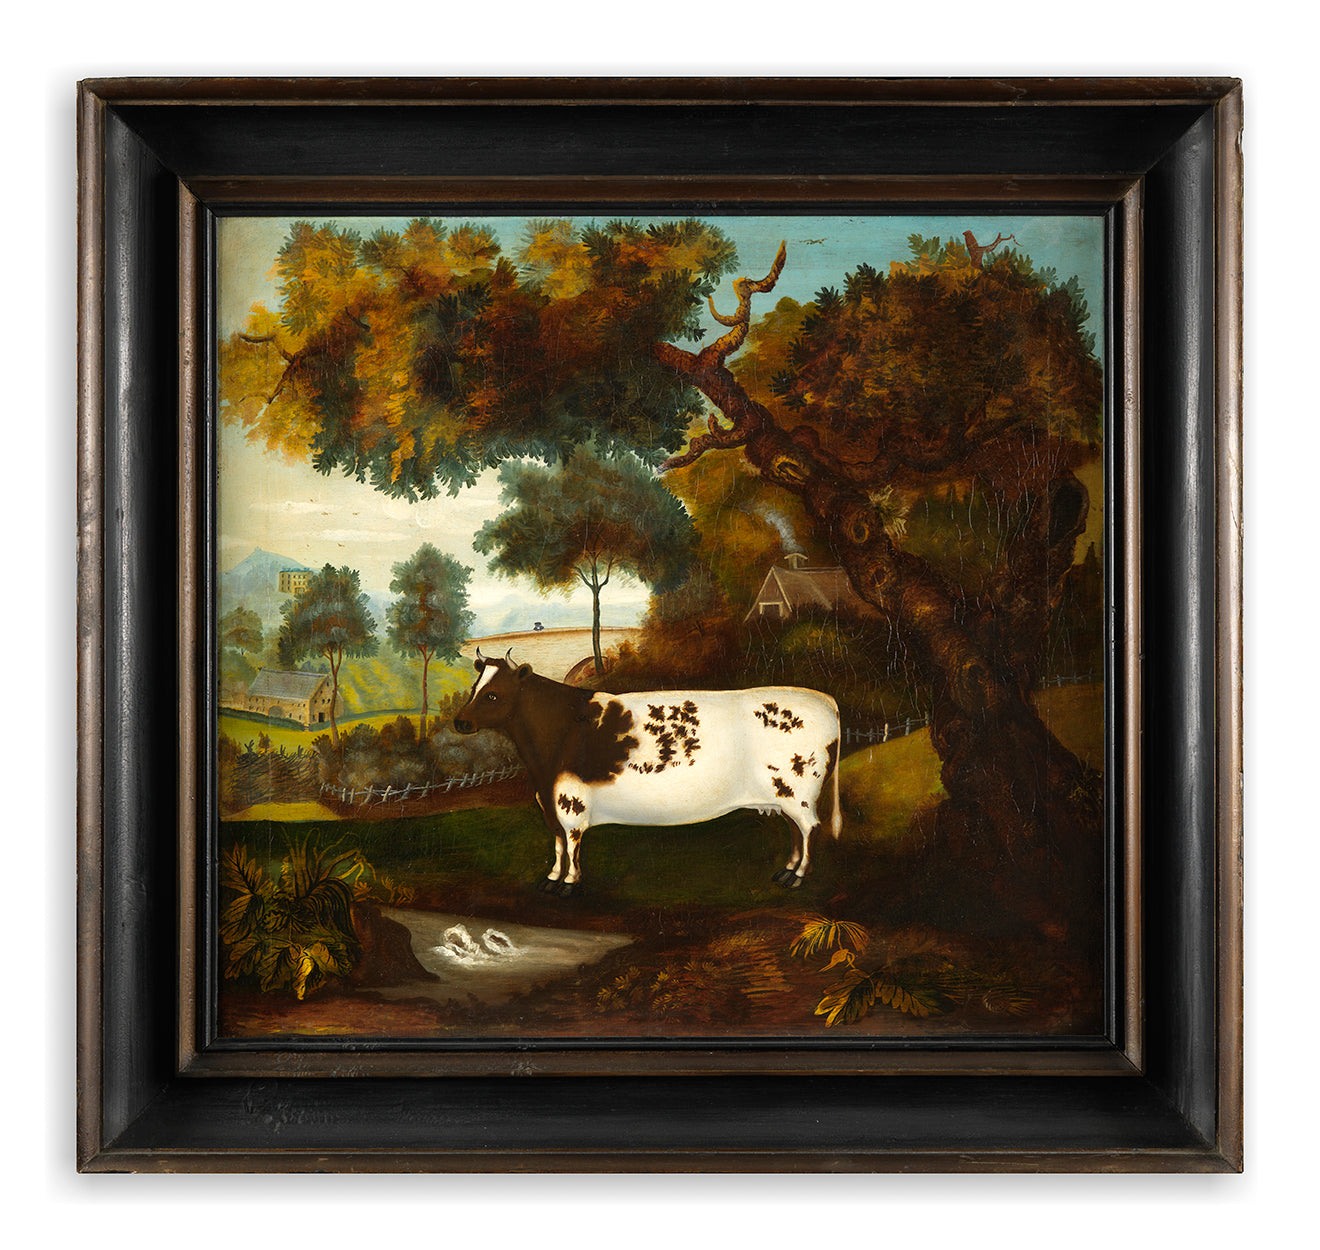 Exceptional Primitive Livestock Painting